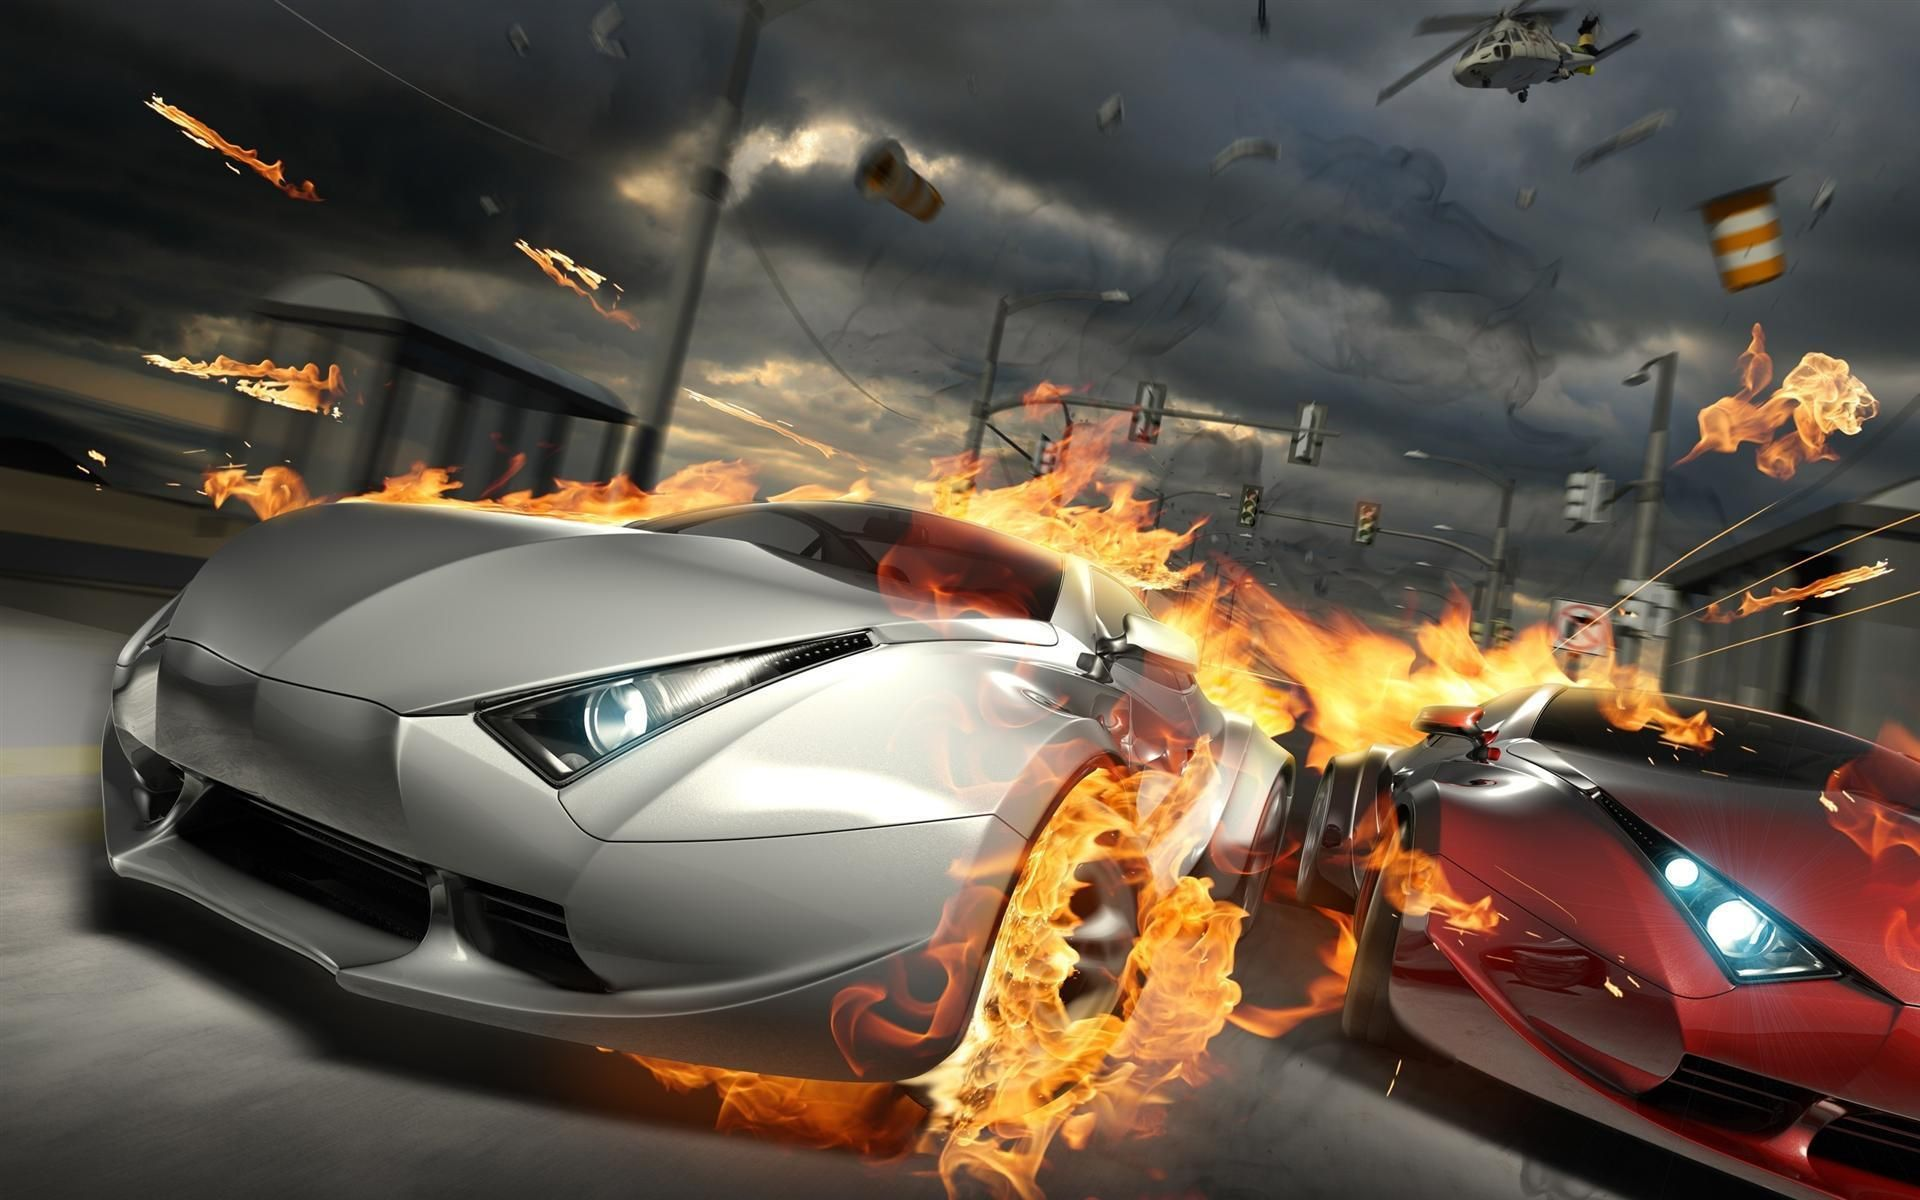 Cool Car Background Wallpapers Car Wallpapers Cool Cars 3d Wallpaper Cars